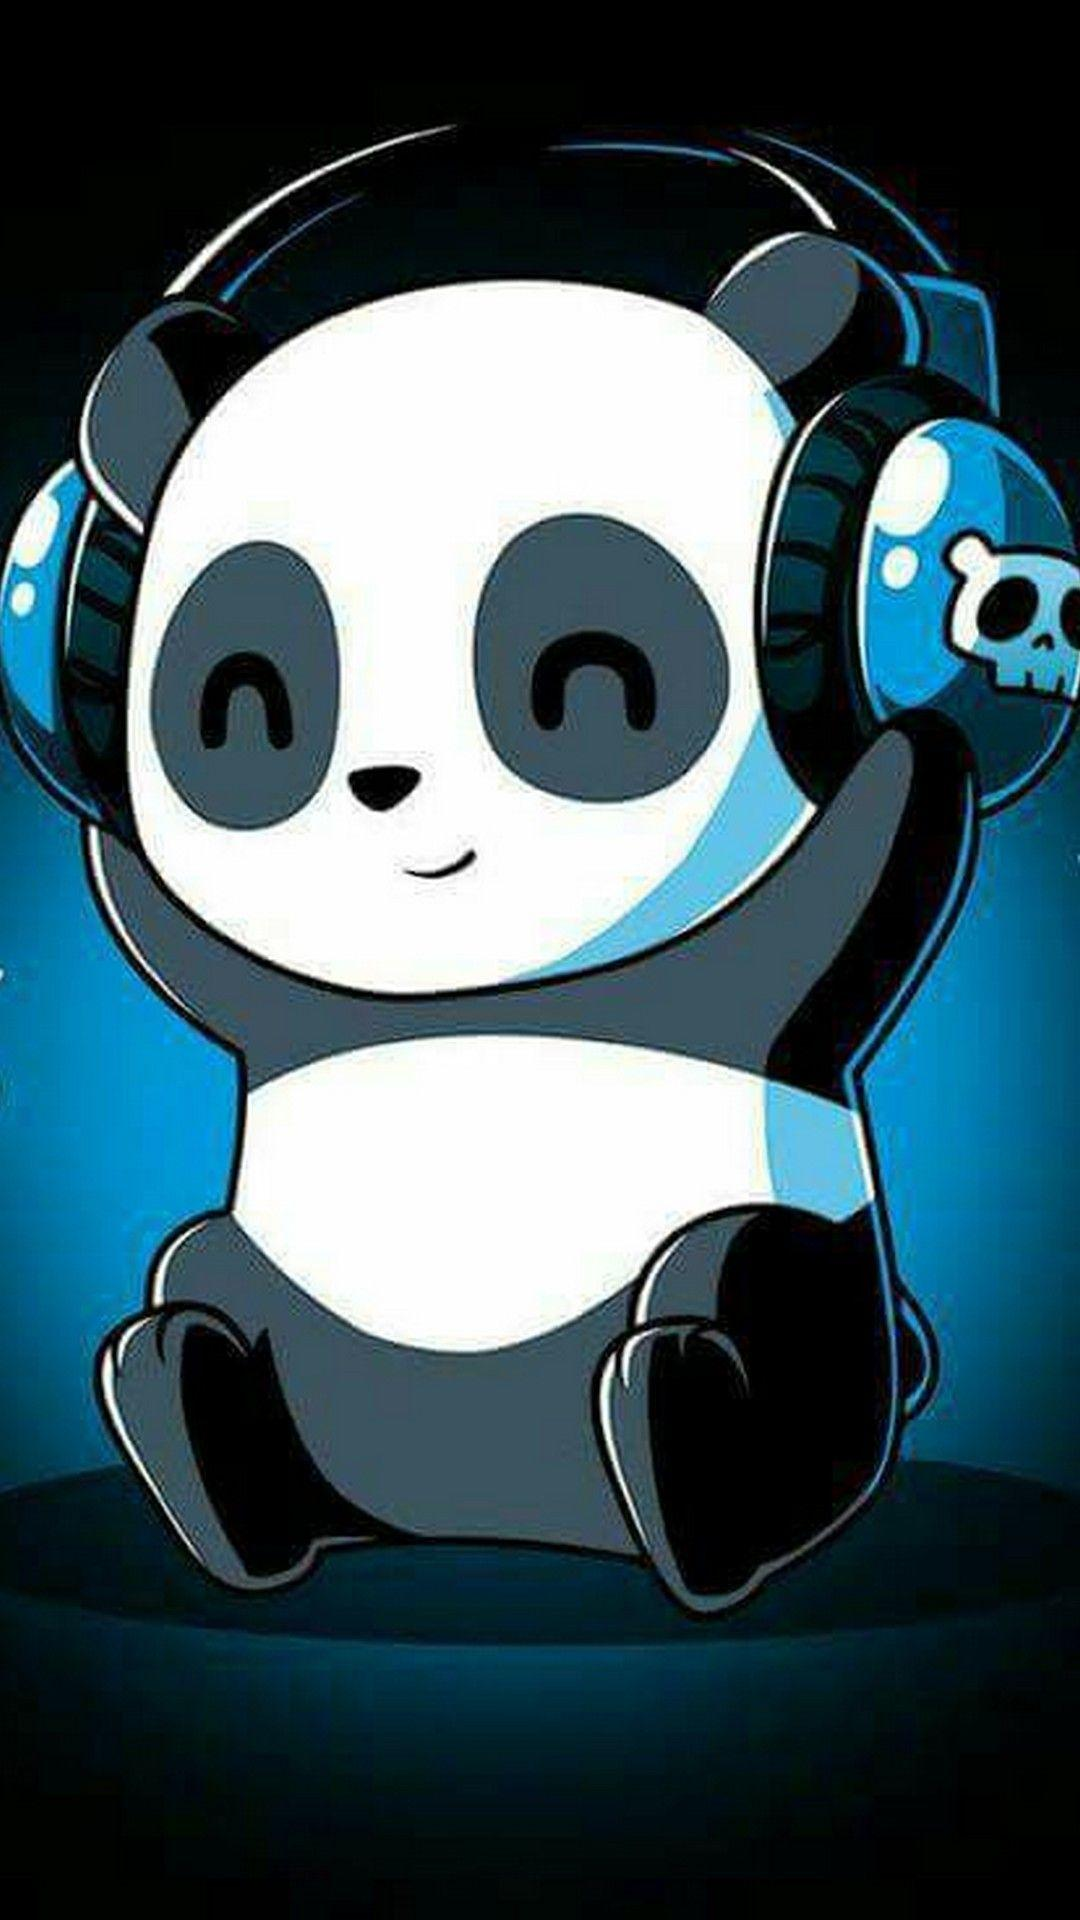 Anime Panda Wallpaper : anime, panda, wallpaper, Panda, Wallpapers, Wallpaper